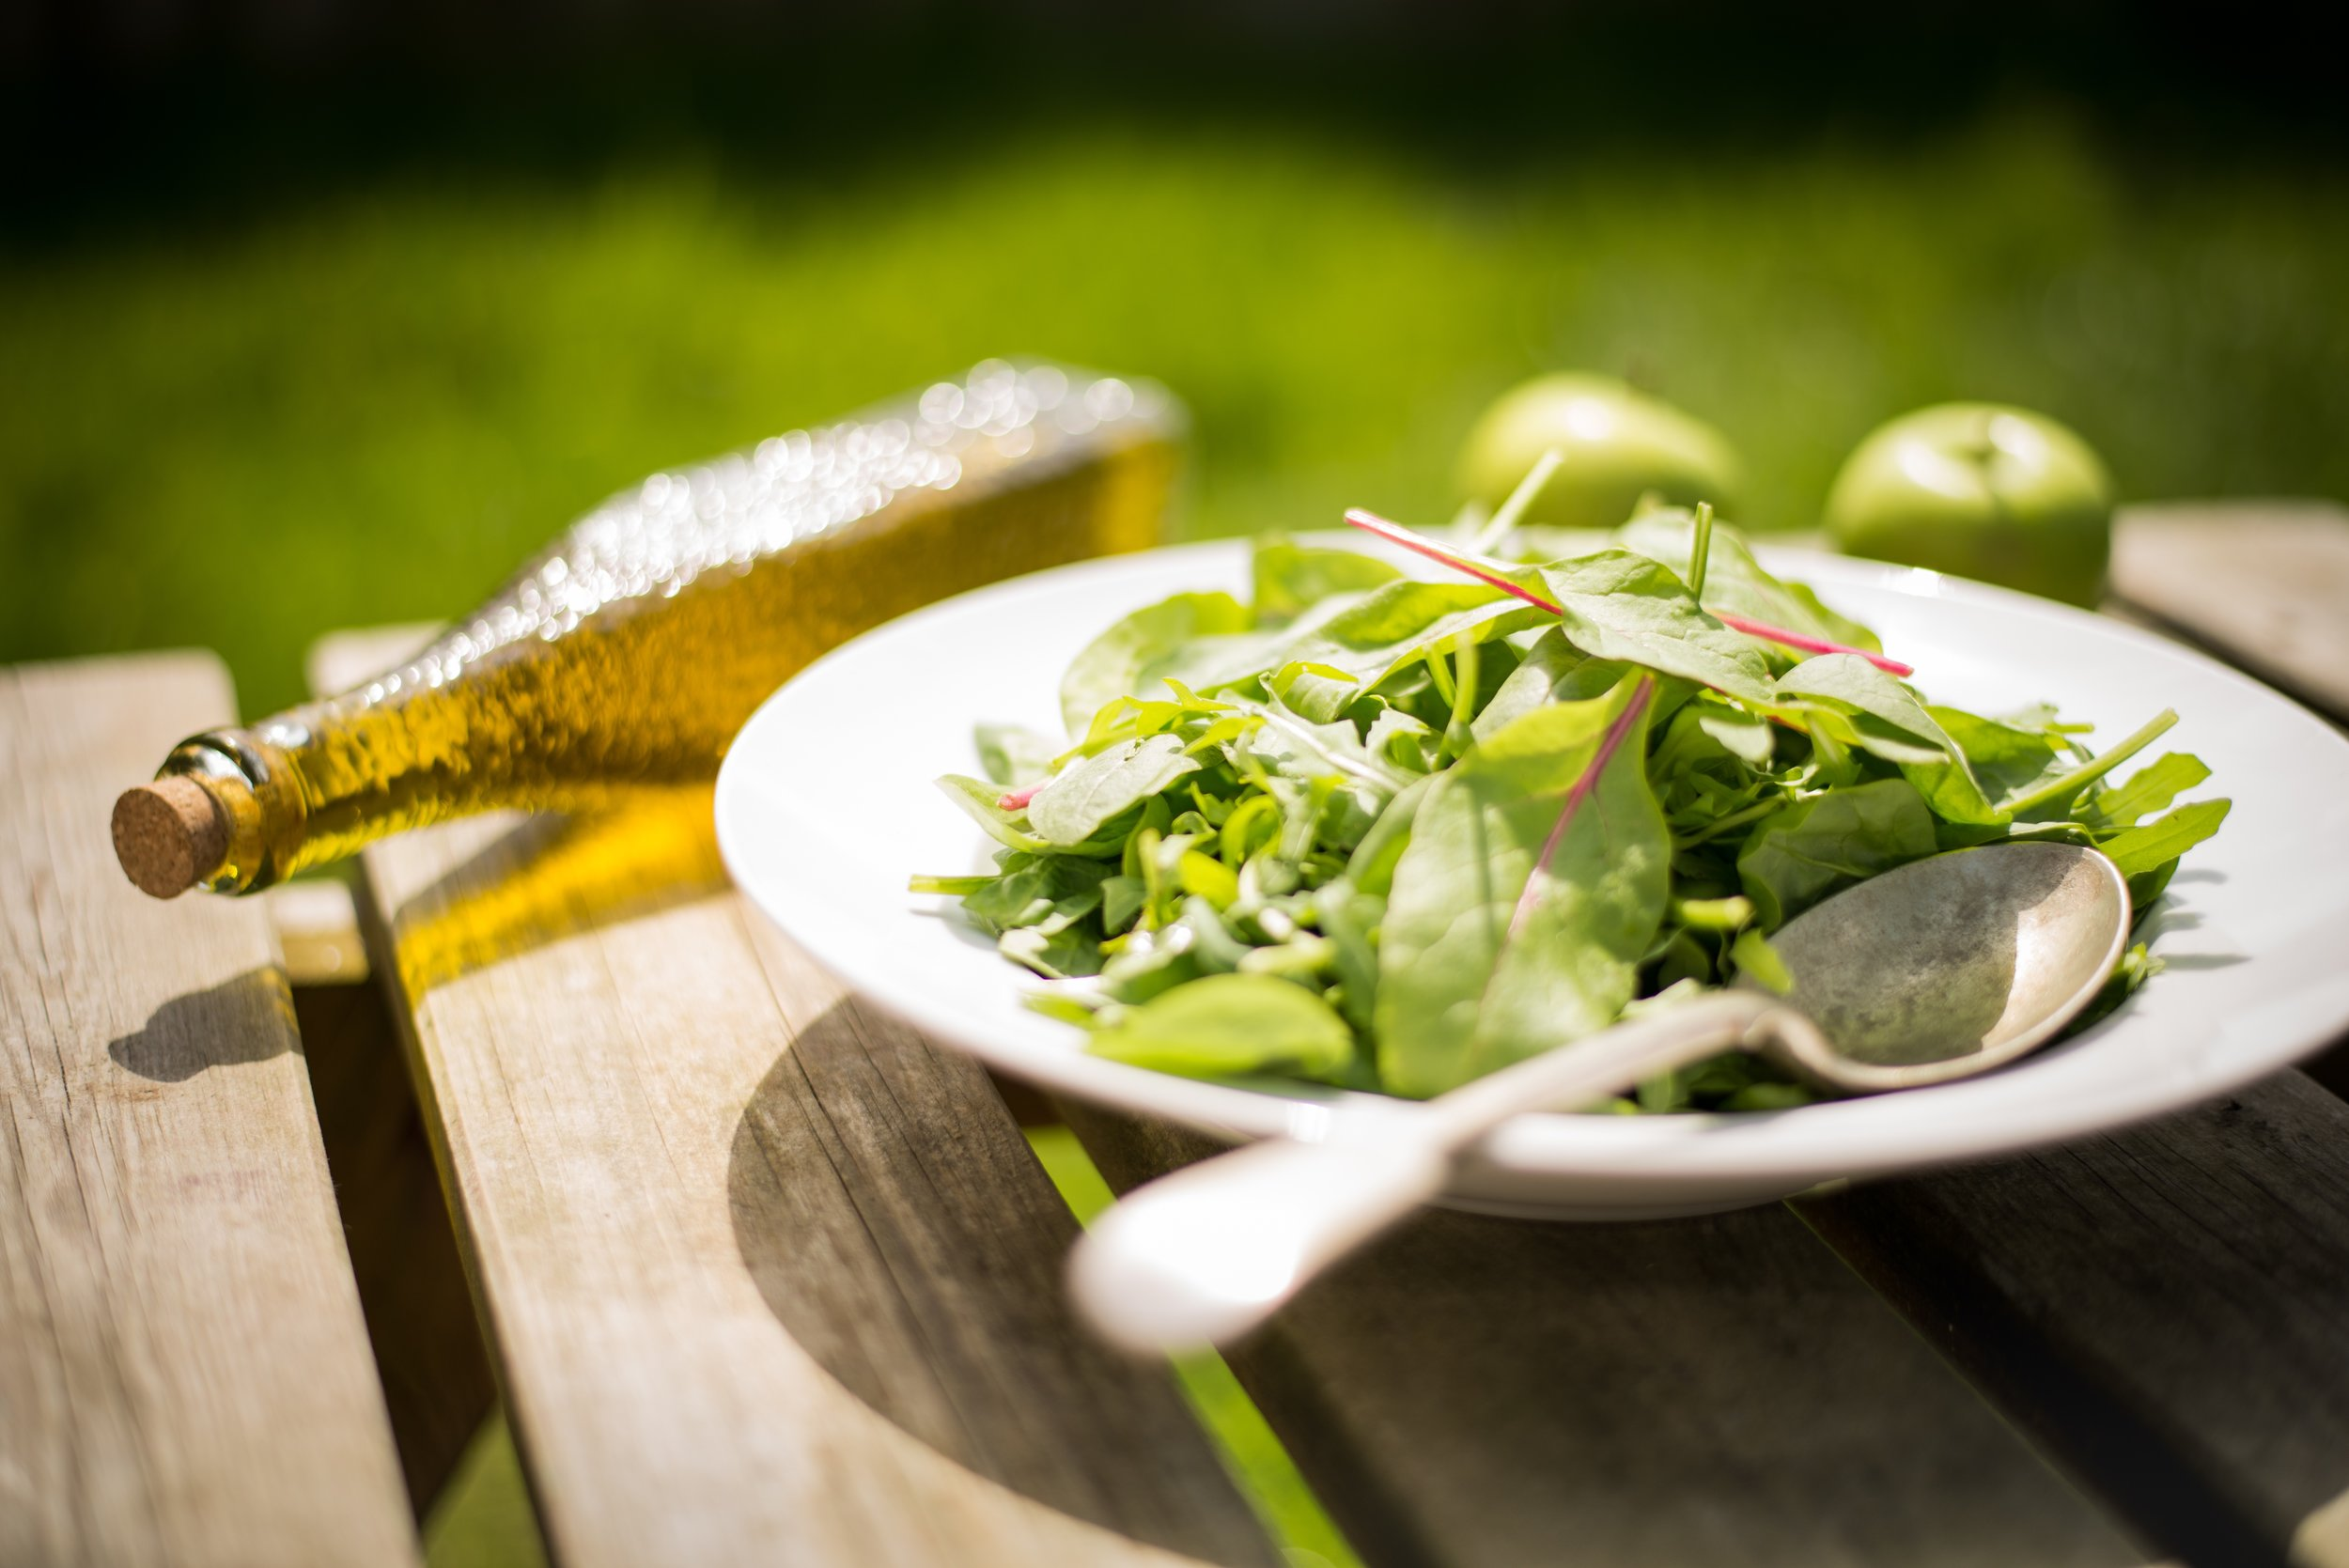 Sun exposure is crucial for promoting optimal health, but too much sun can cause skin damage. Protect your skin from sun damage by eating a nutrient-dense diet rich in antioxidants and healthy fats.